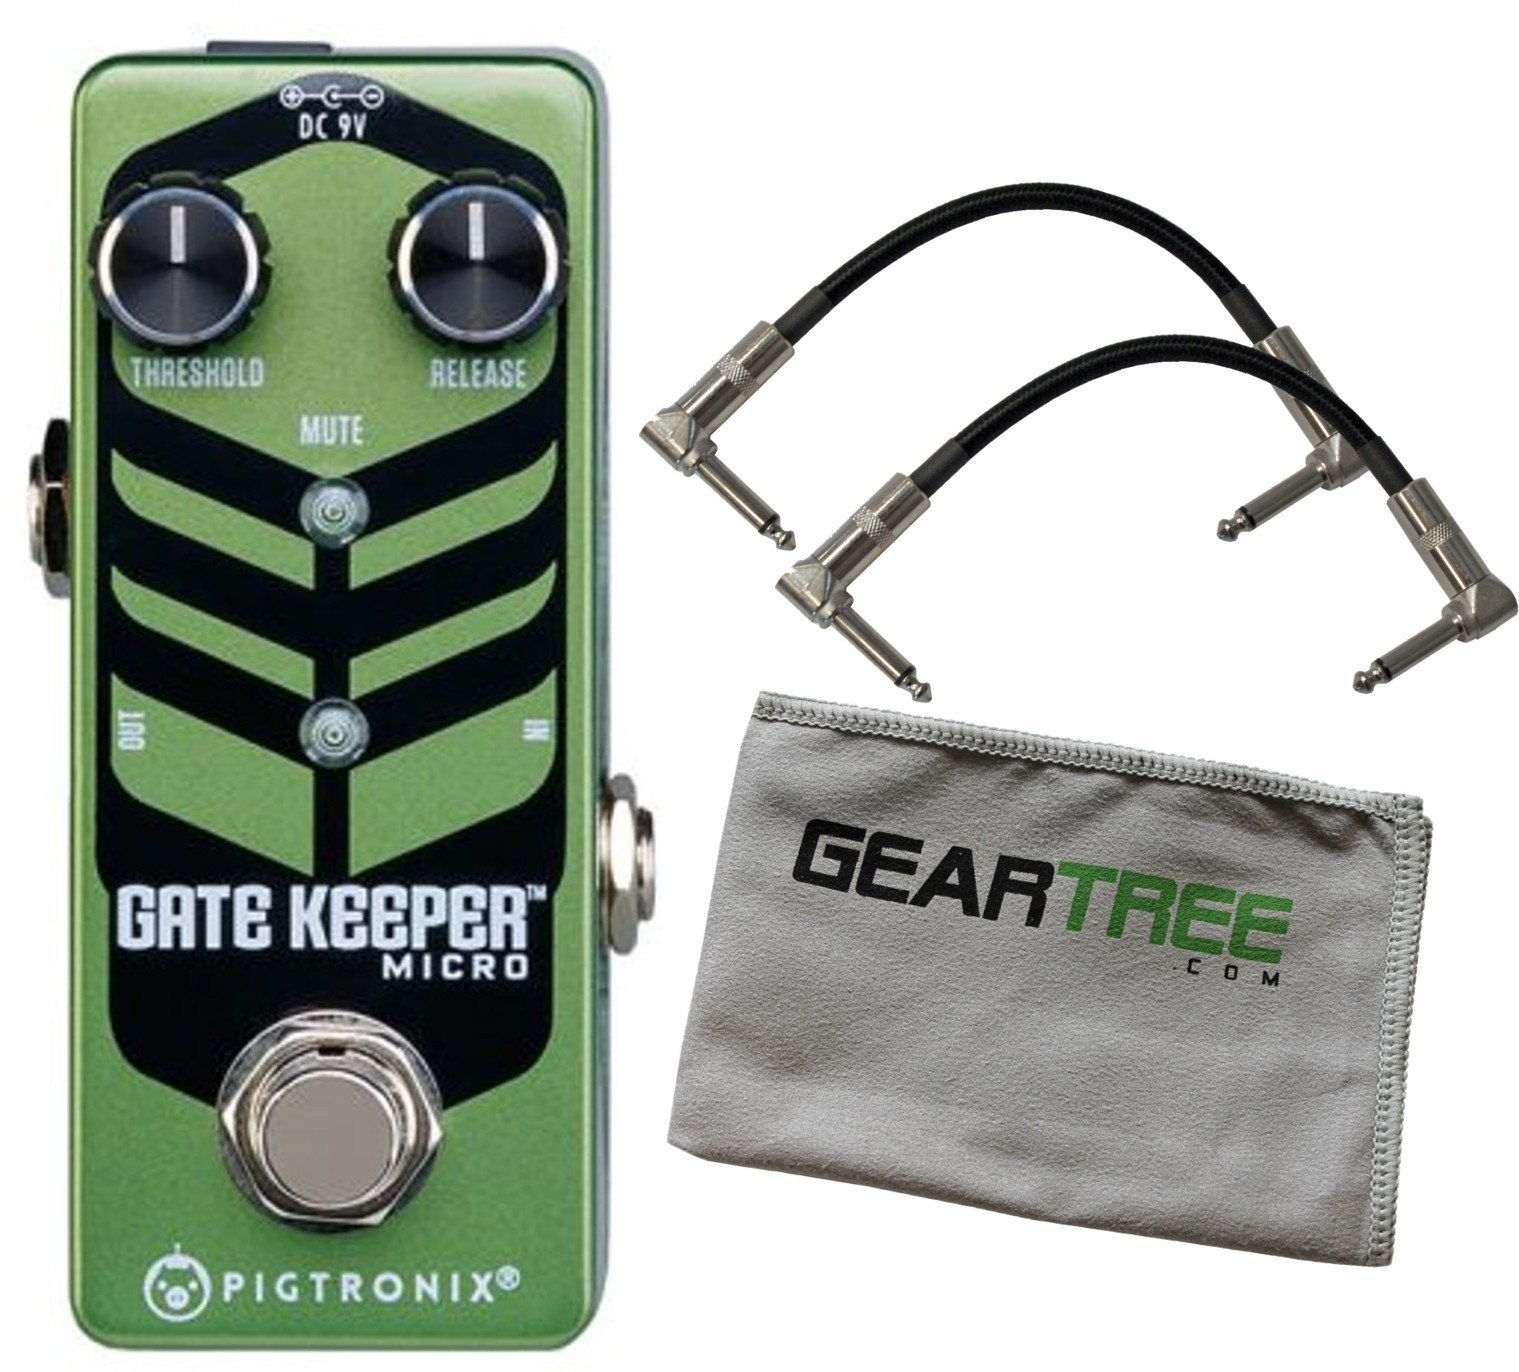 Pigtronix GKM Gatekeeper Micro Noise Gate Pedal Bundle w/ 2 Cables and Cloth by Pigtronix